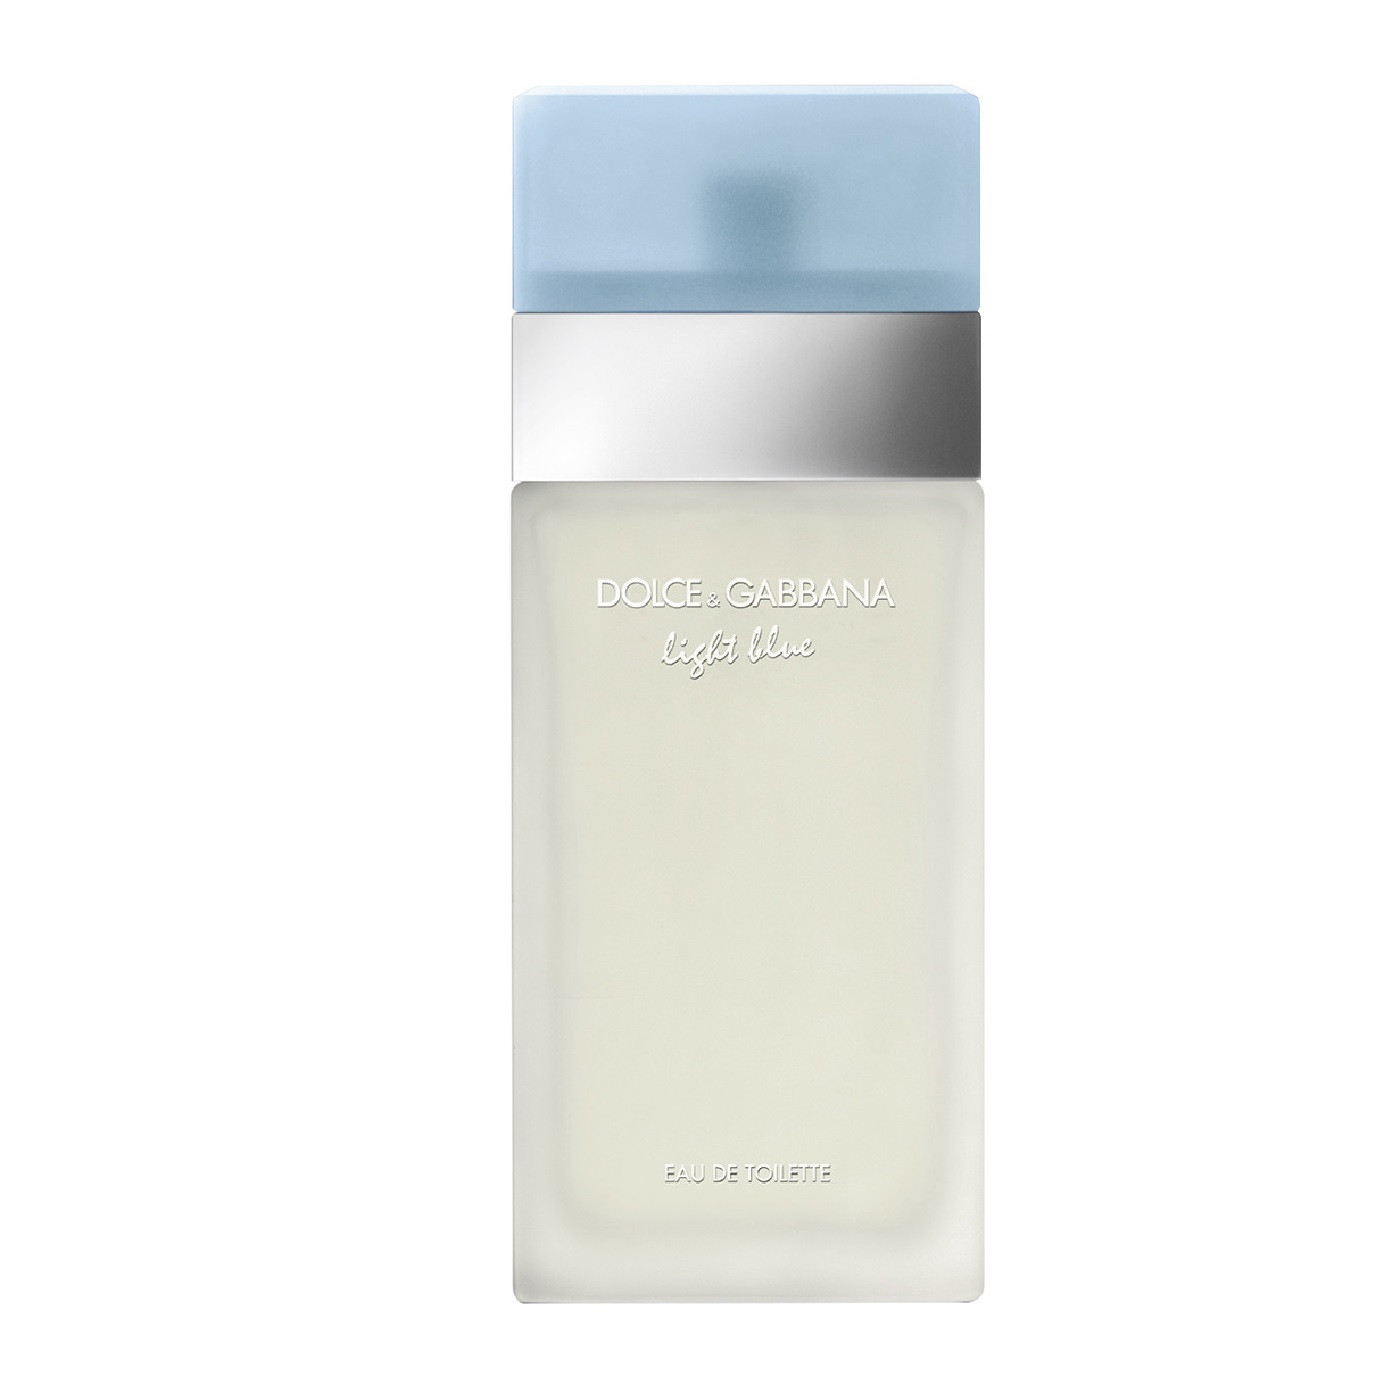 Dolce Gabbana Light Blue Pour Femme Eau De Toilette Spray 50 Ml Women Perfumes Perfumes